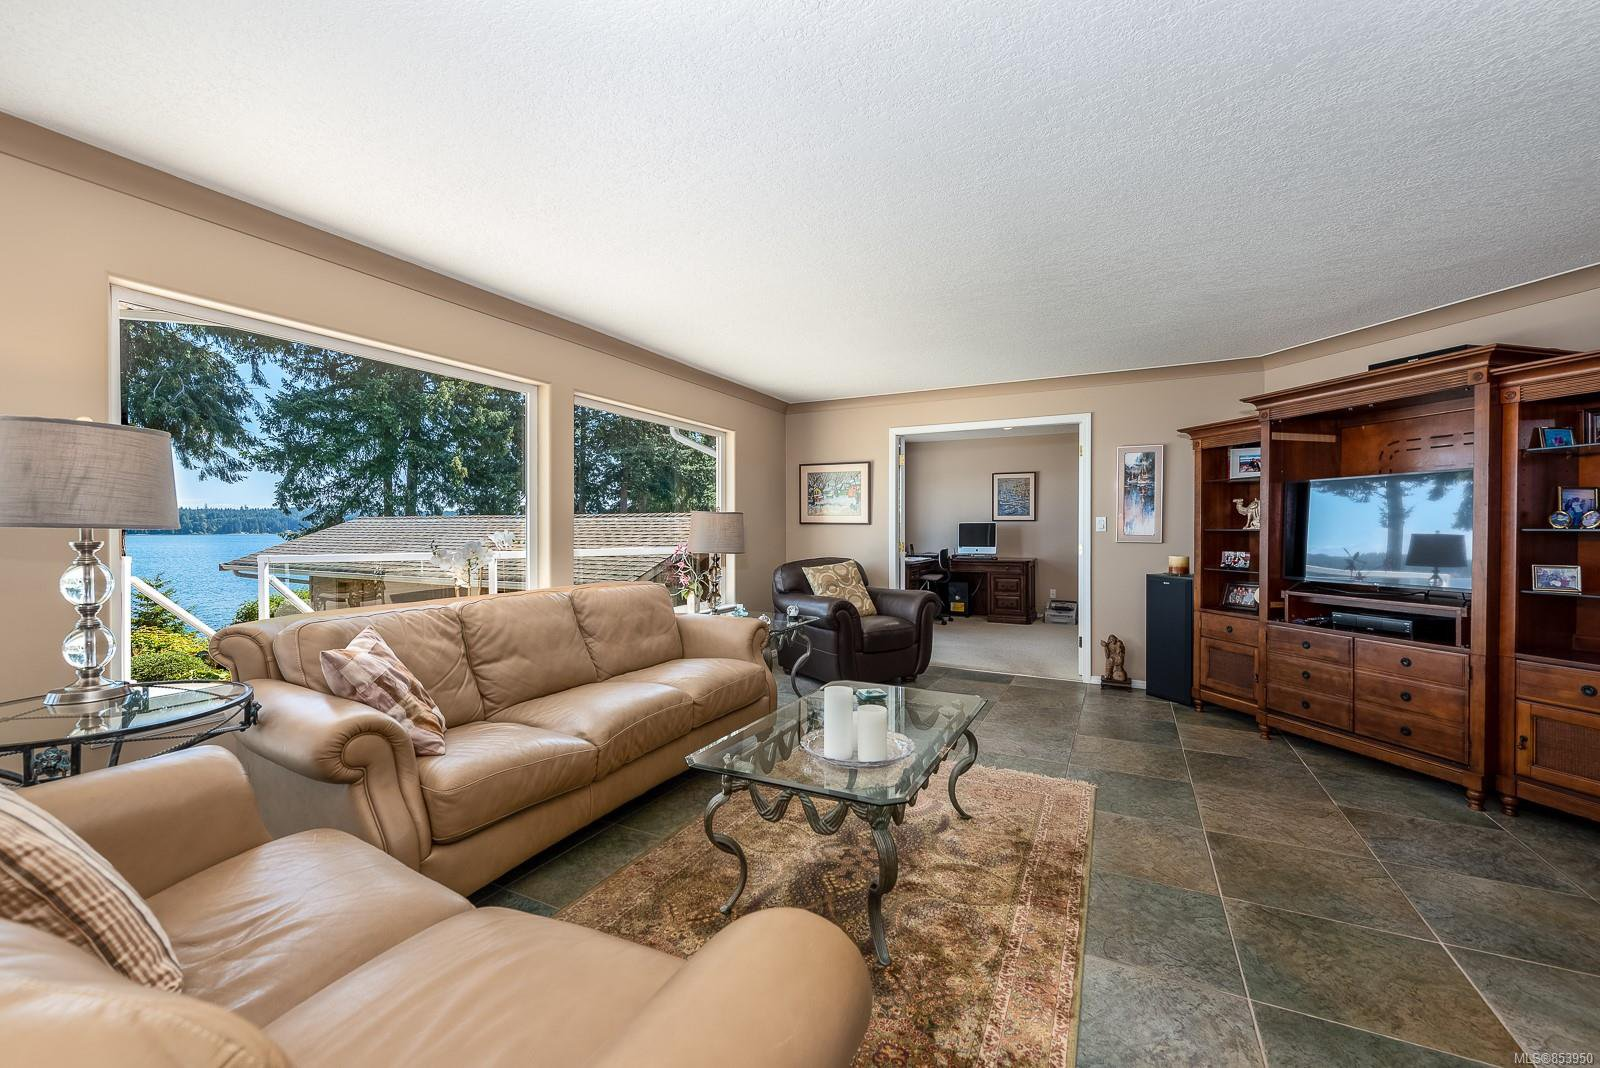 Photo 17: Photos: 5880 GARVIN Rd in : CV Union Bay/Fanny Bay House for sale (Comox Valley)  : MLS®# 853950